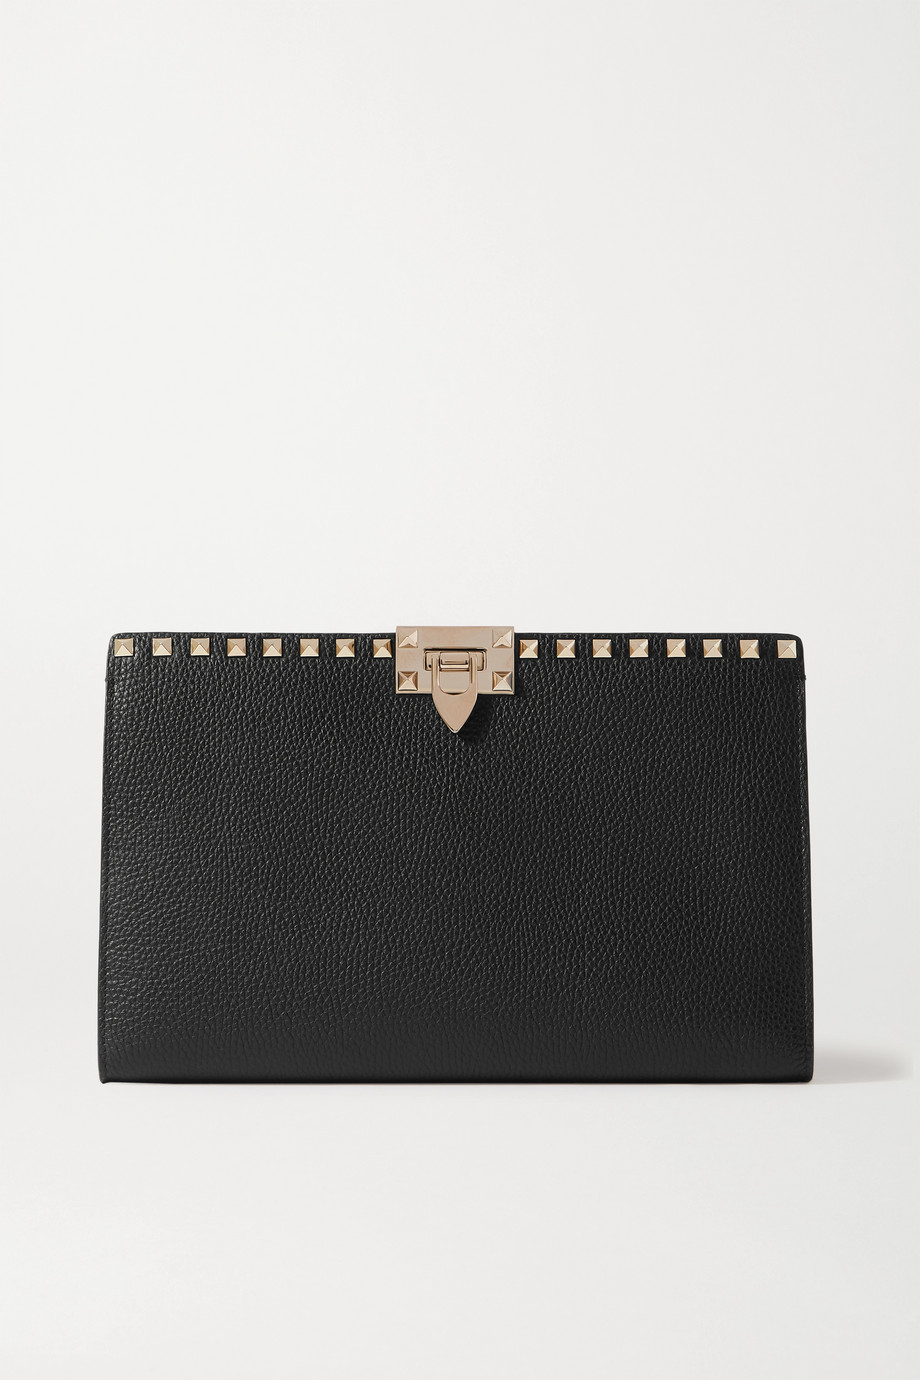 VALENTINO Valentino Garavani Rockstud textured-leather clutch